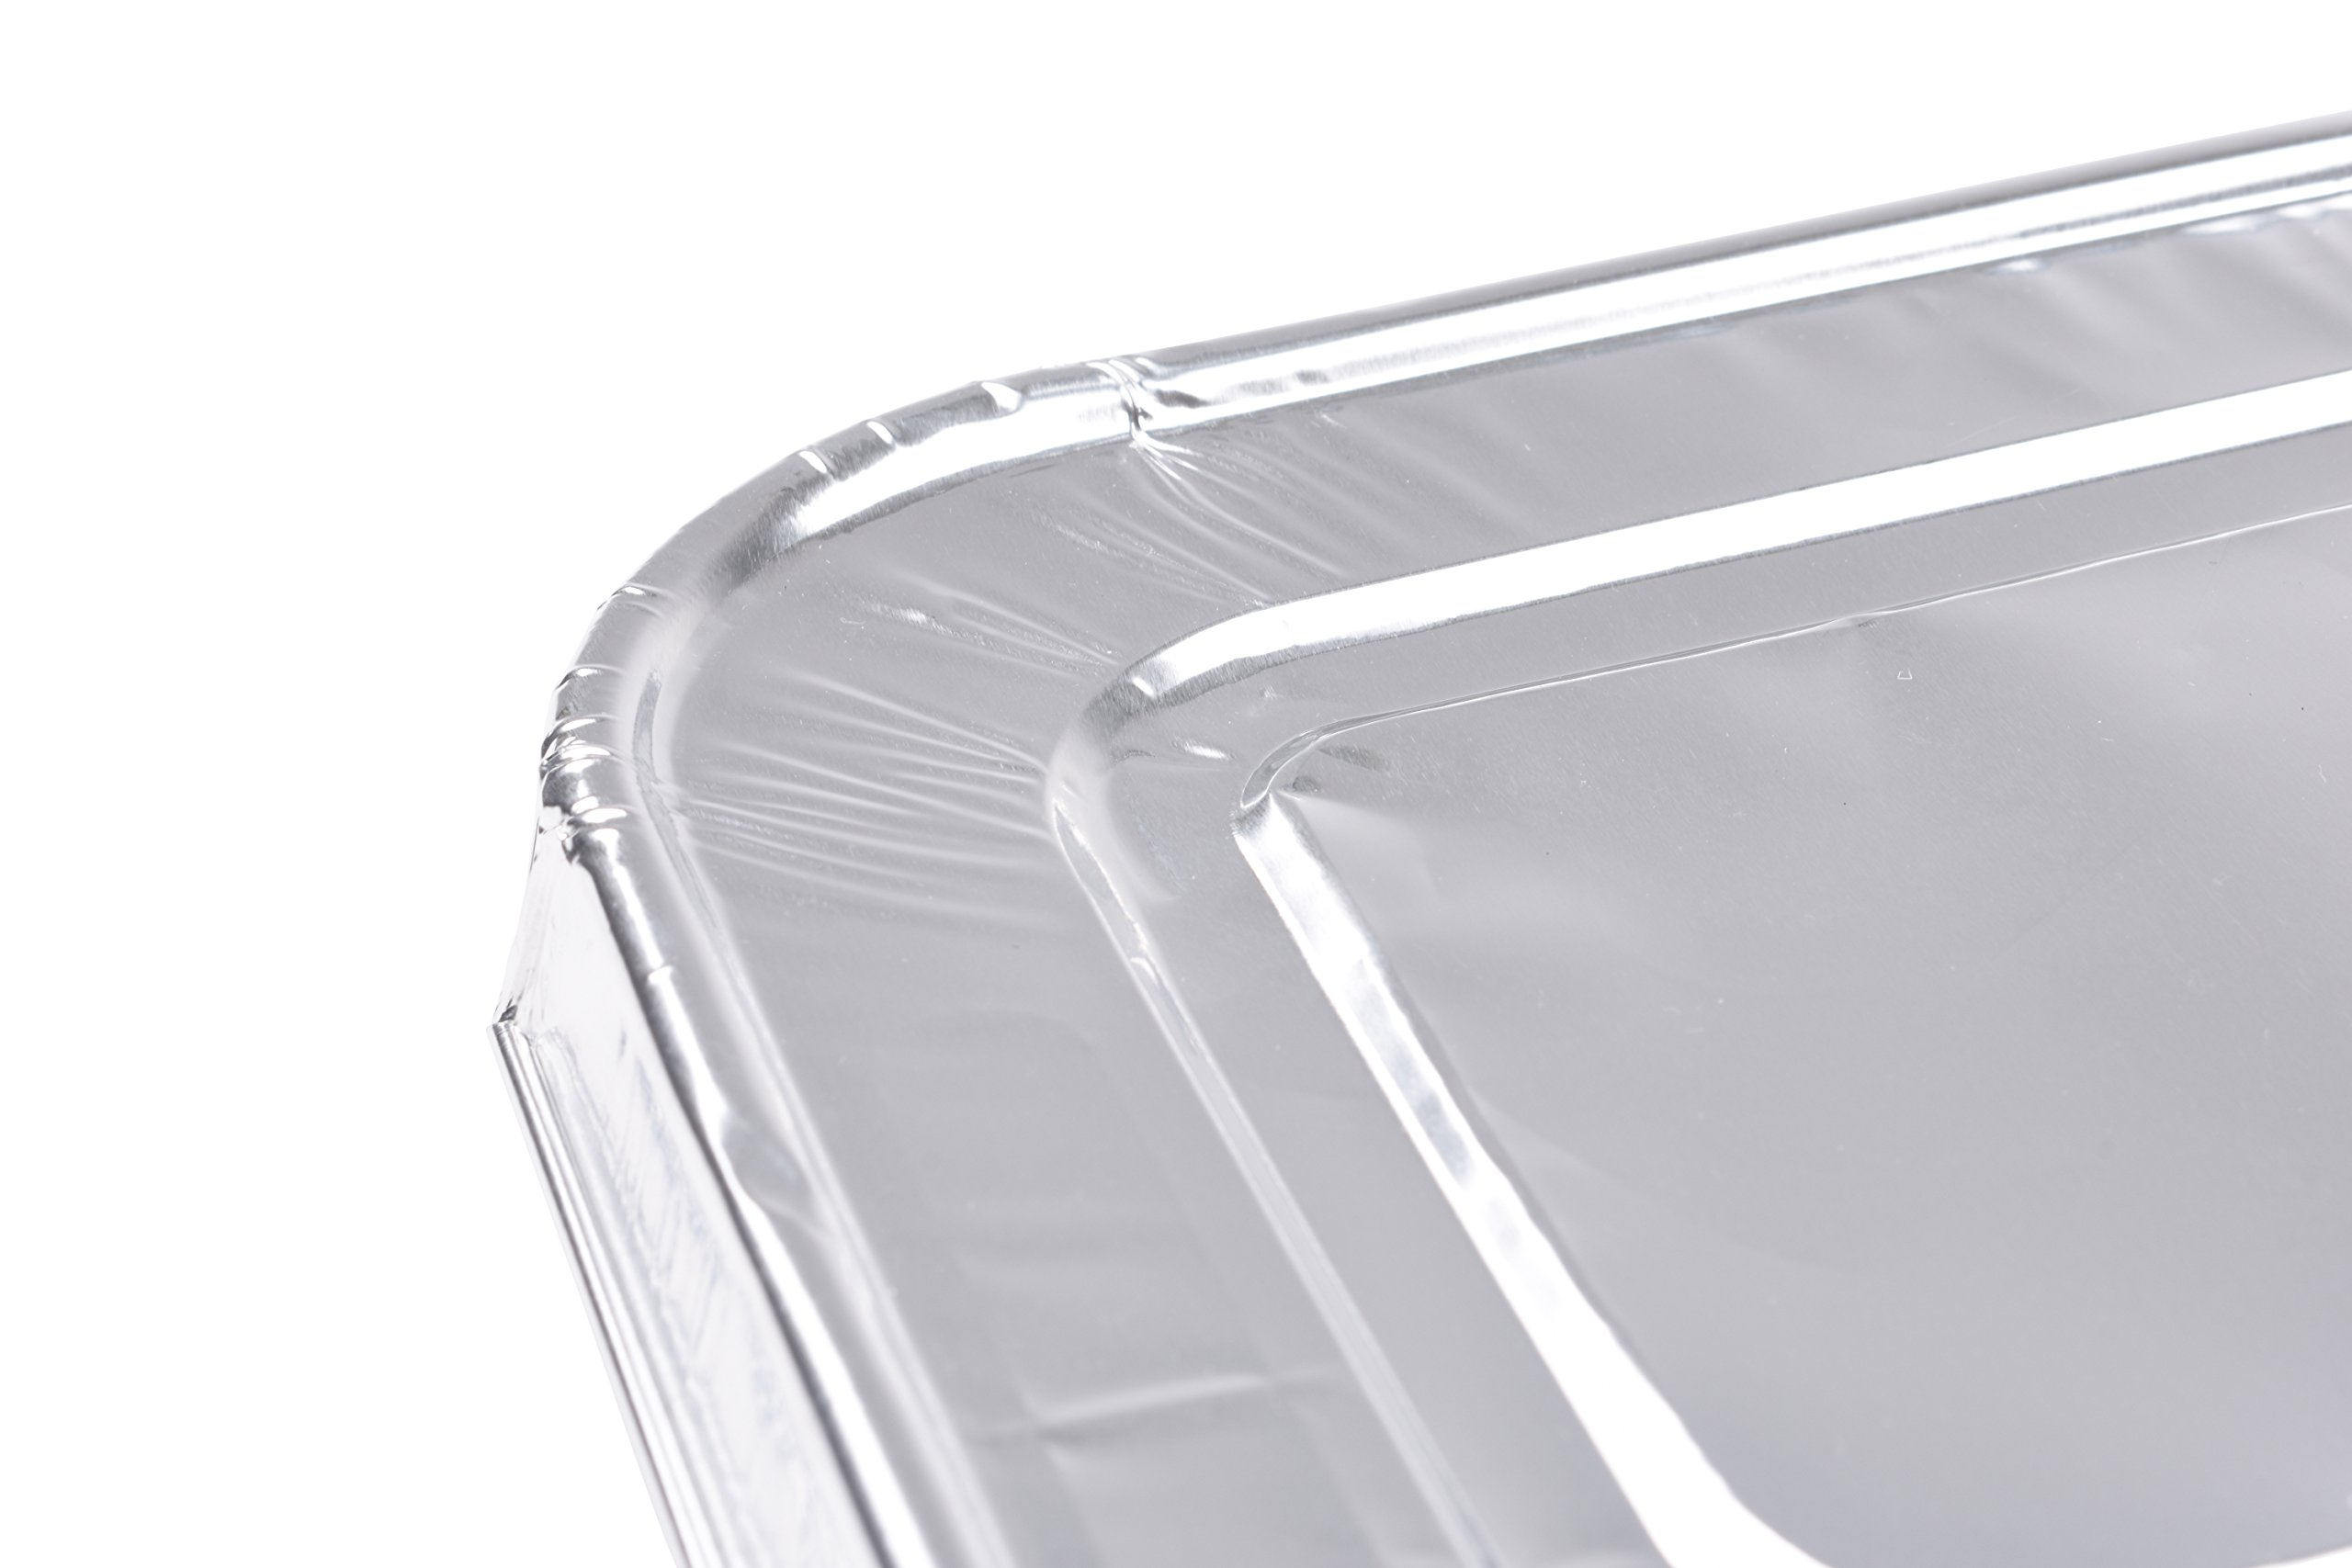 A World of Deals 9 X 13 Half Size Deep Foil Steam Pans with Lids, 30 Pack by A World Of Deals (Image #5)